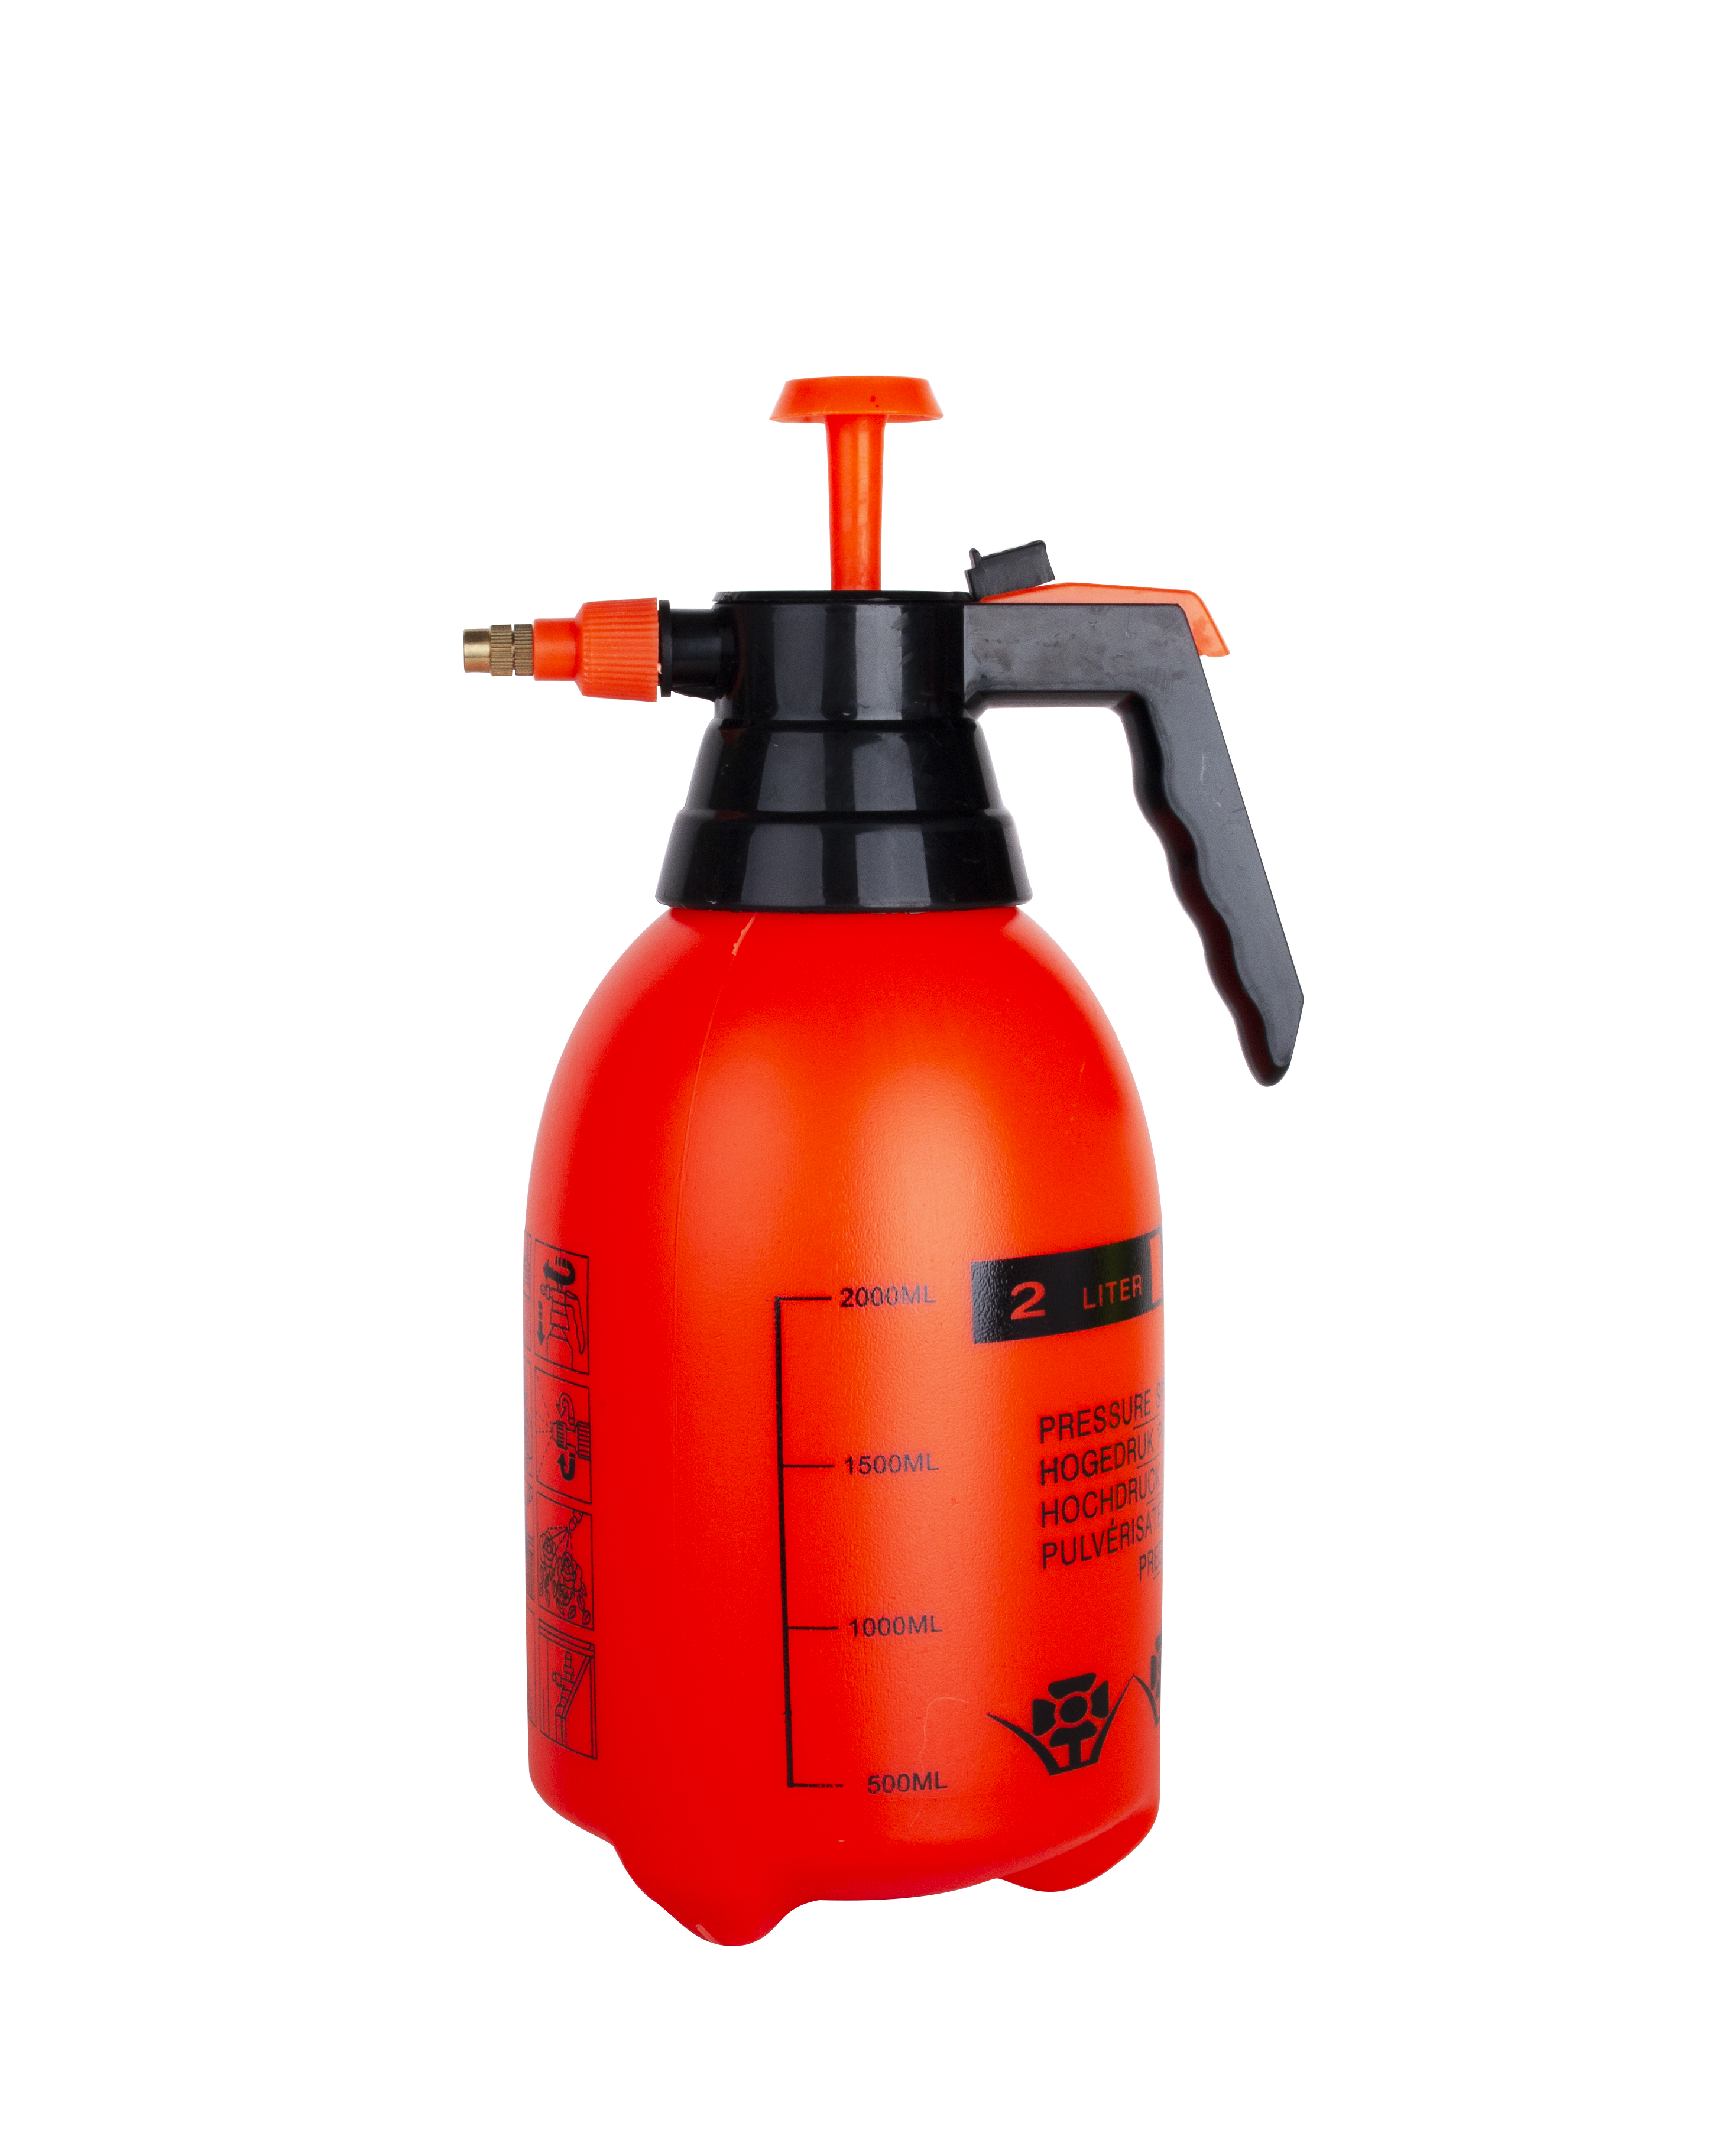 2000ml plastic agricultural trigger sprayer bottle for hand sanitizer alcohol <strong>spray</strong> China